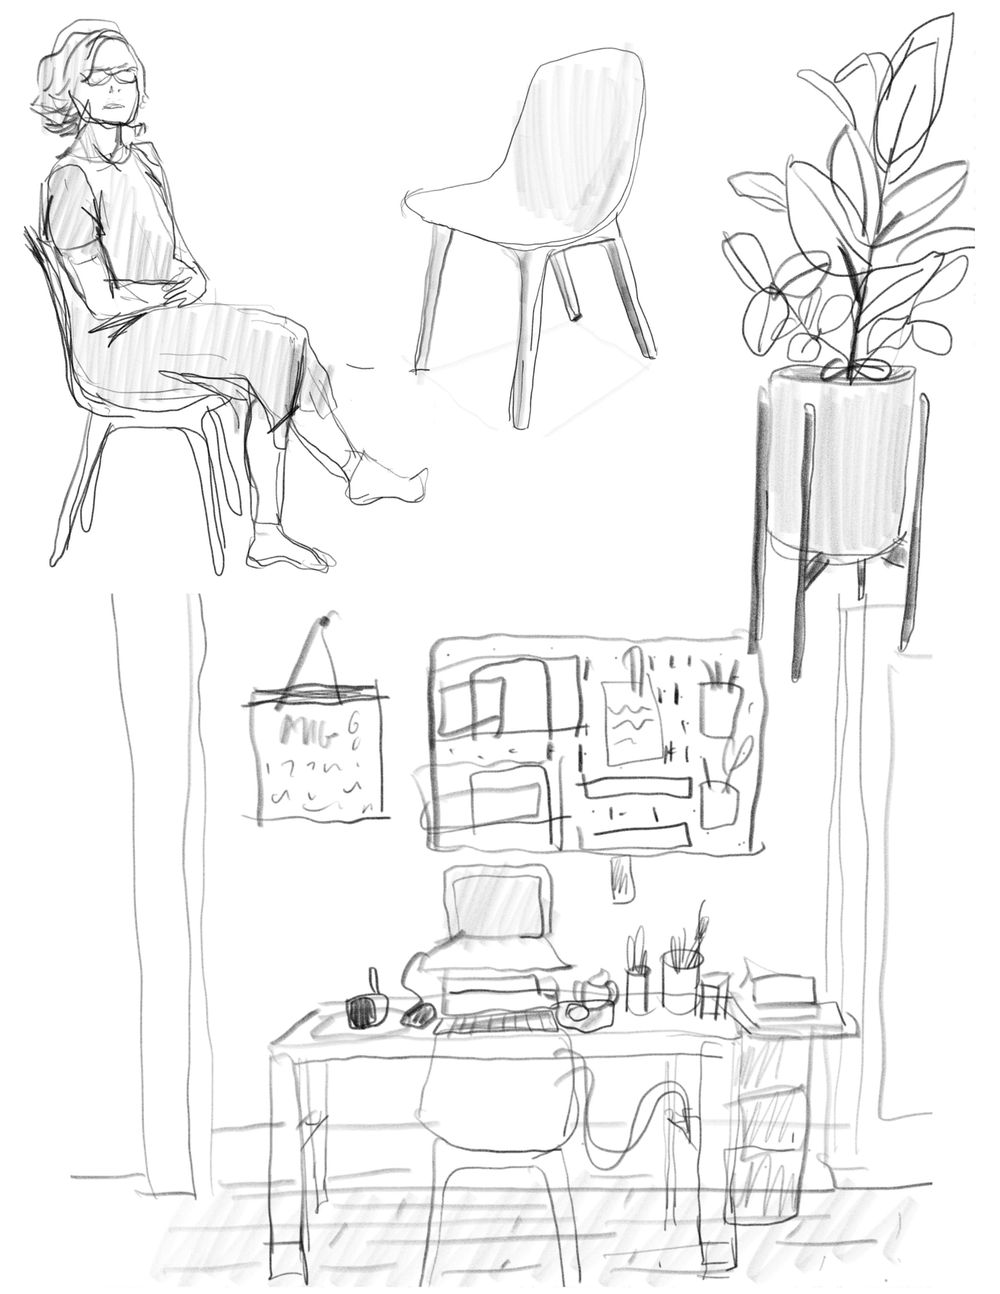 Home Office - image 3 - student project